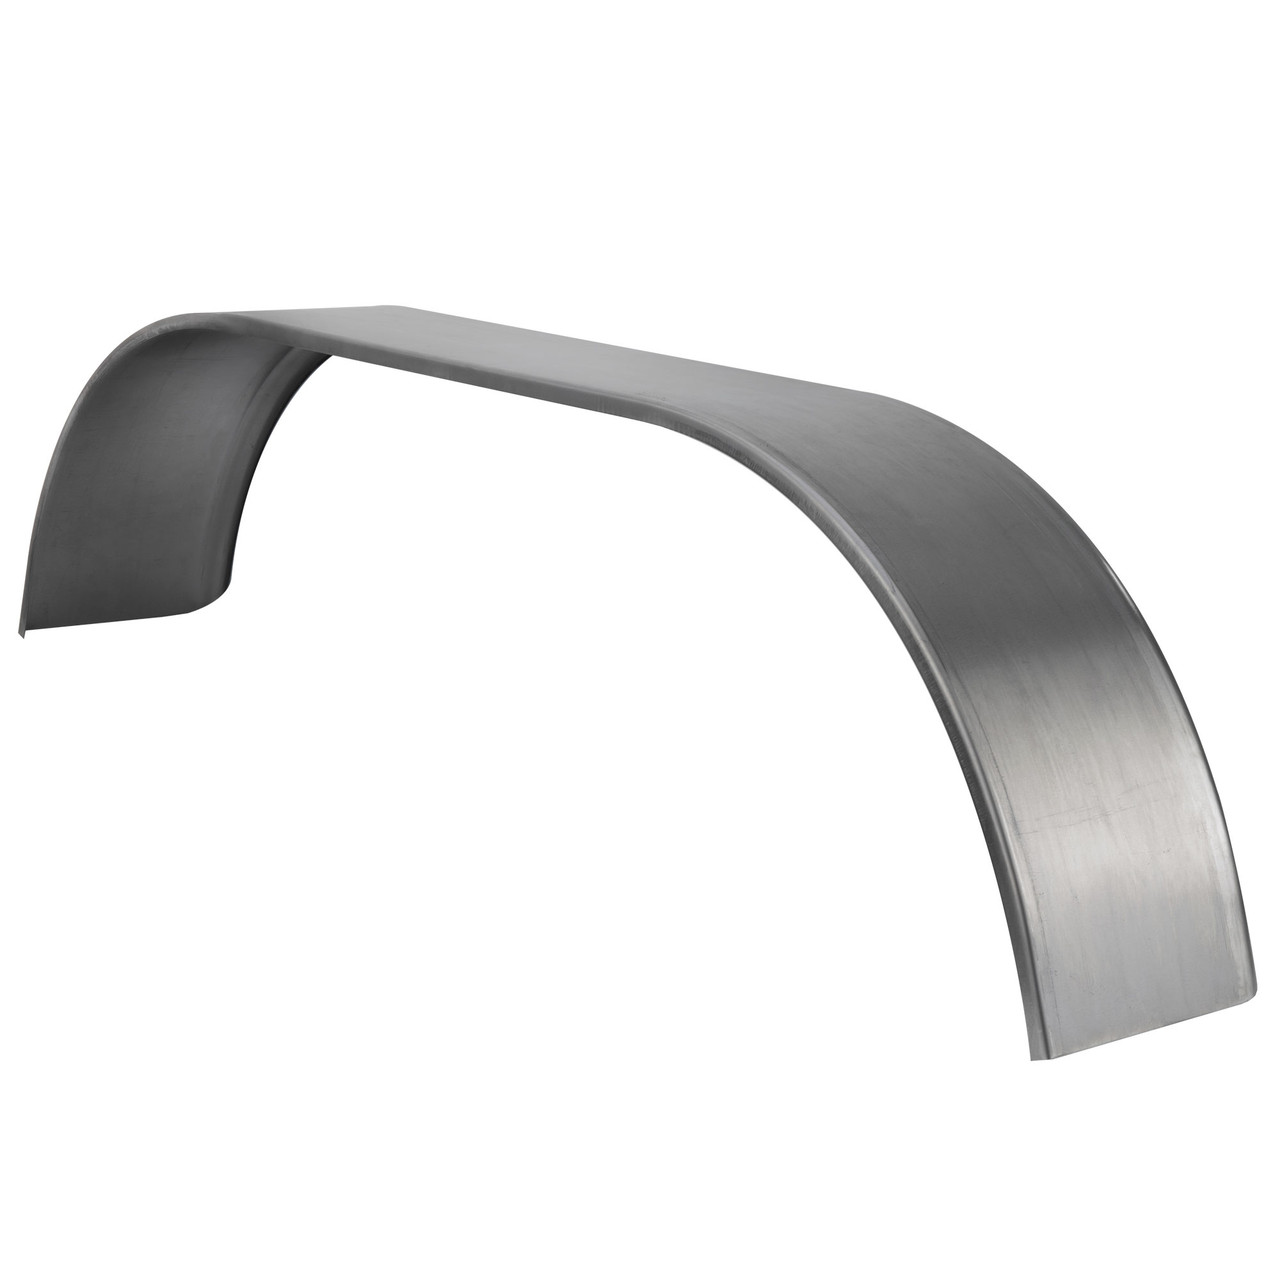 4 Colors to Choose from Campers and Trailers RecPro Tandem Trailer Fender Skirt for RVs Black, 2-Pack